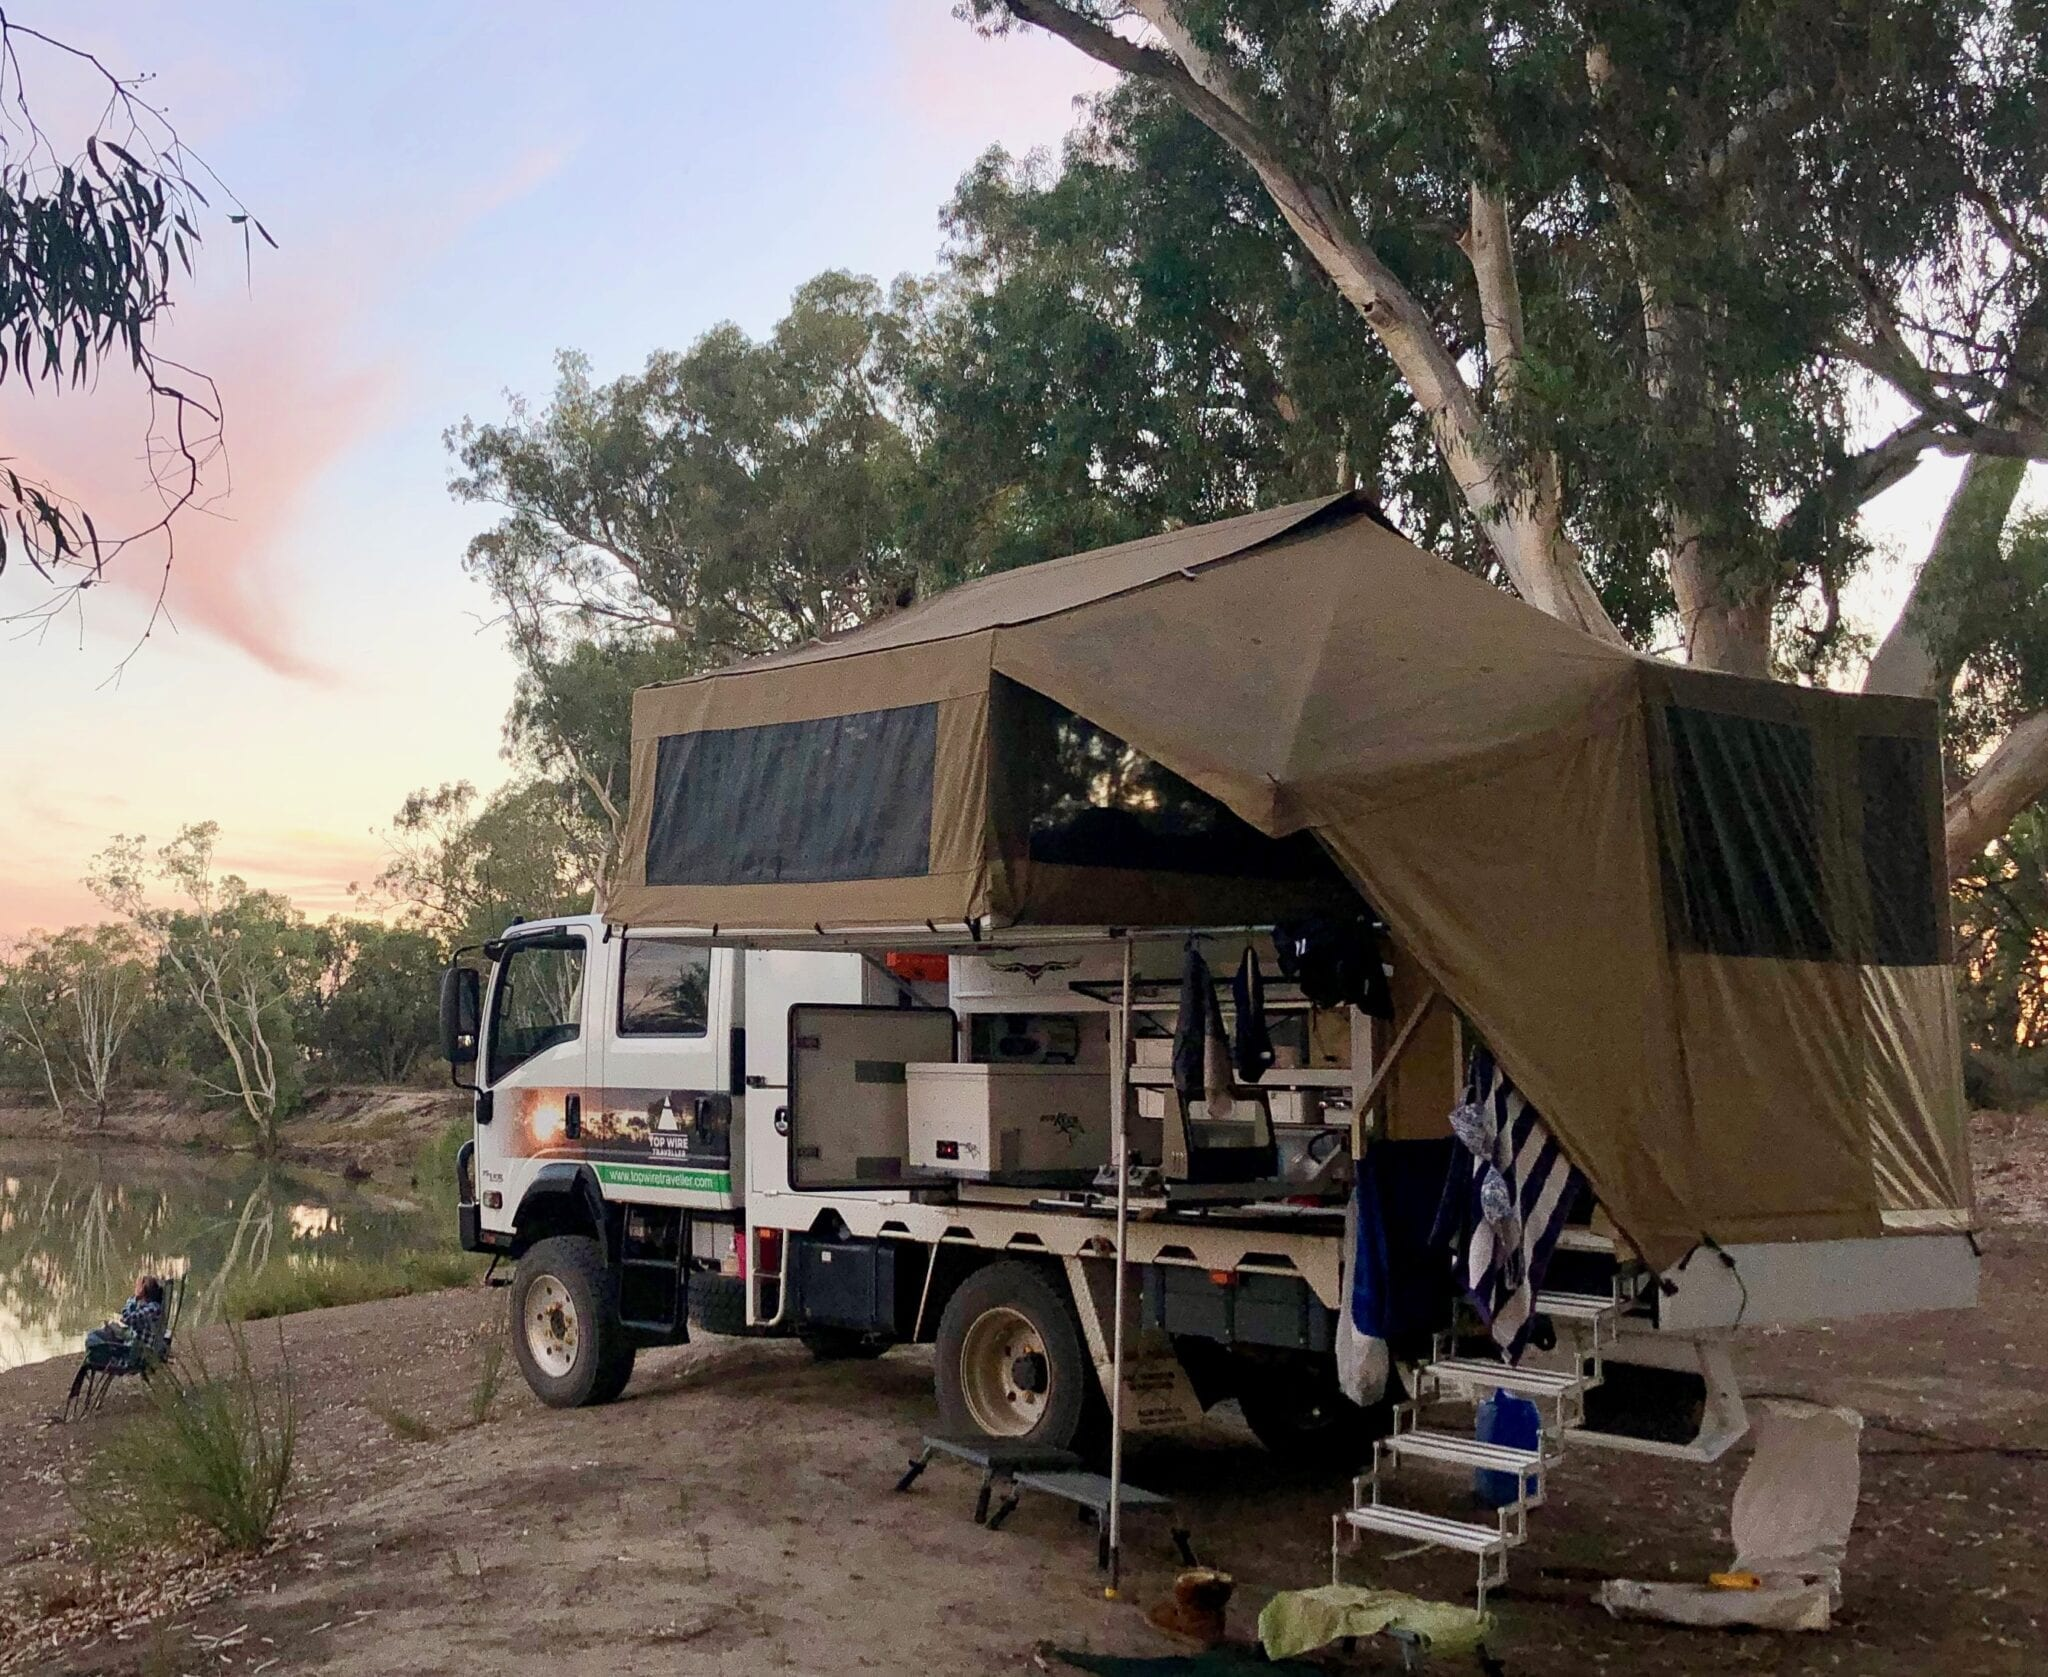 Wedgetail Camper mounted on an Isuzu NPS light truck. Camped on the Murray River in South Australia.